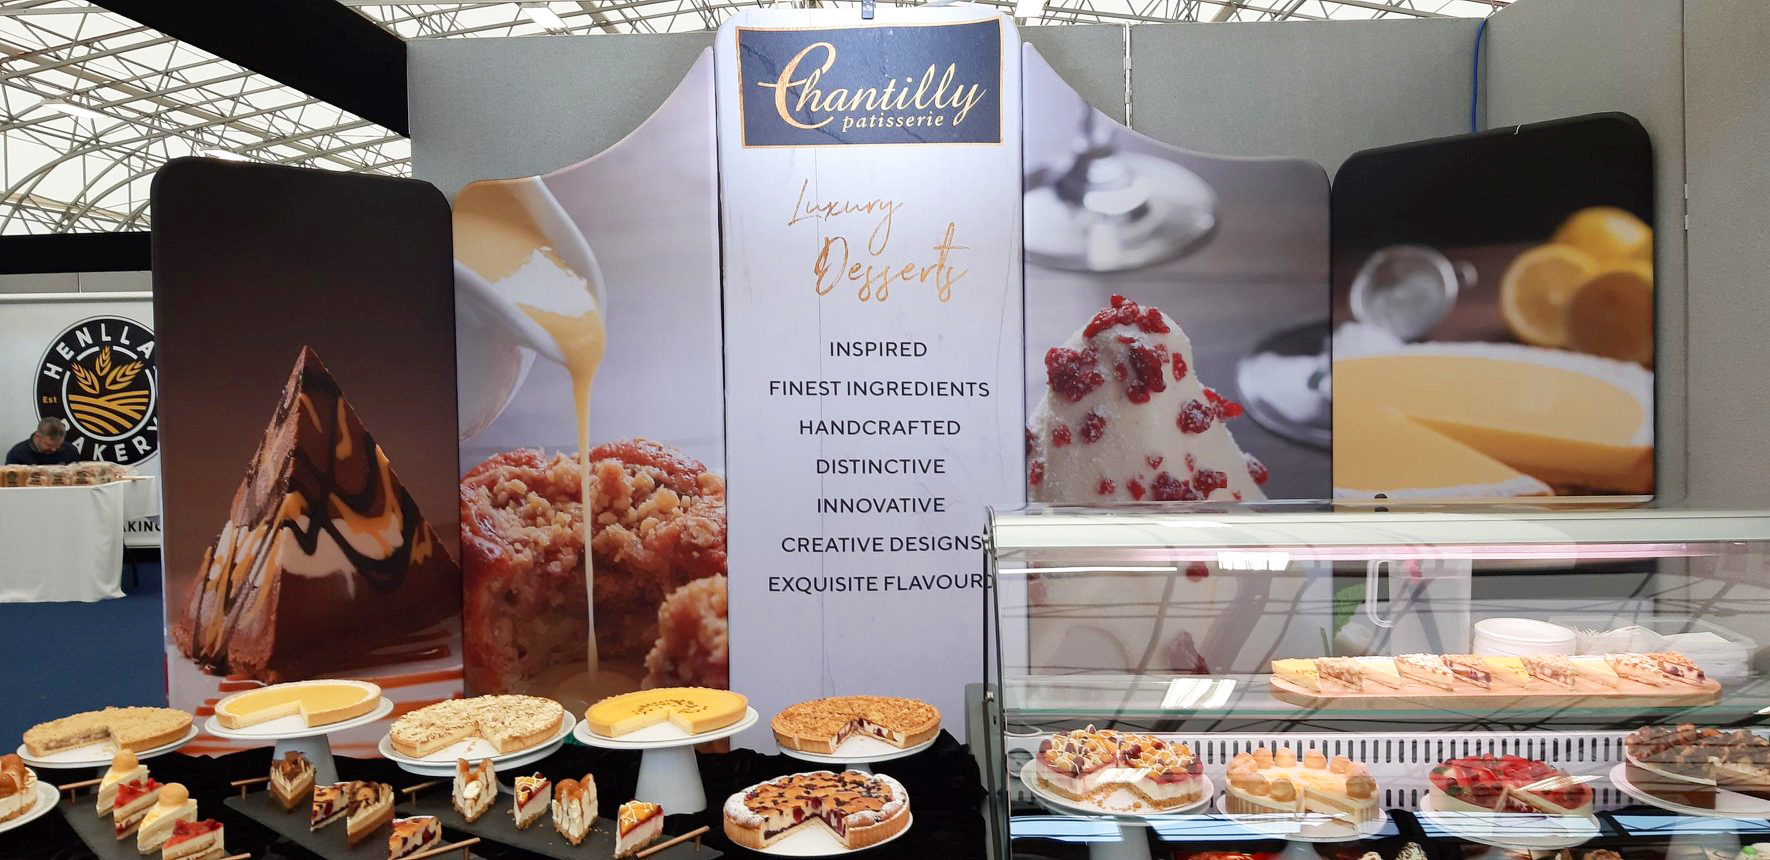 chantilly-patisserie-display-signage-3